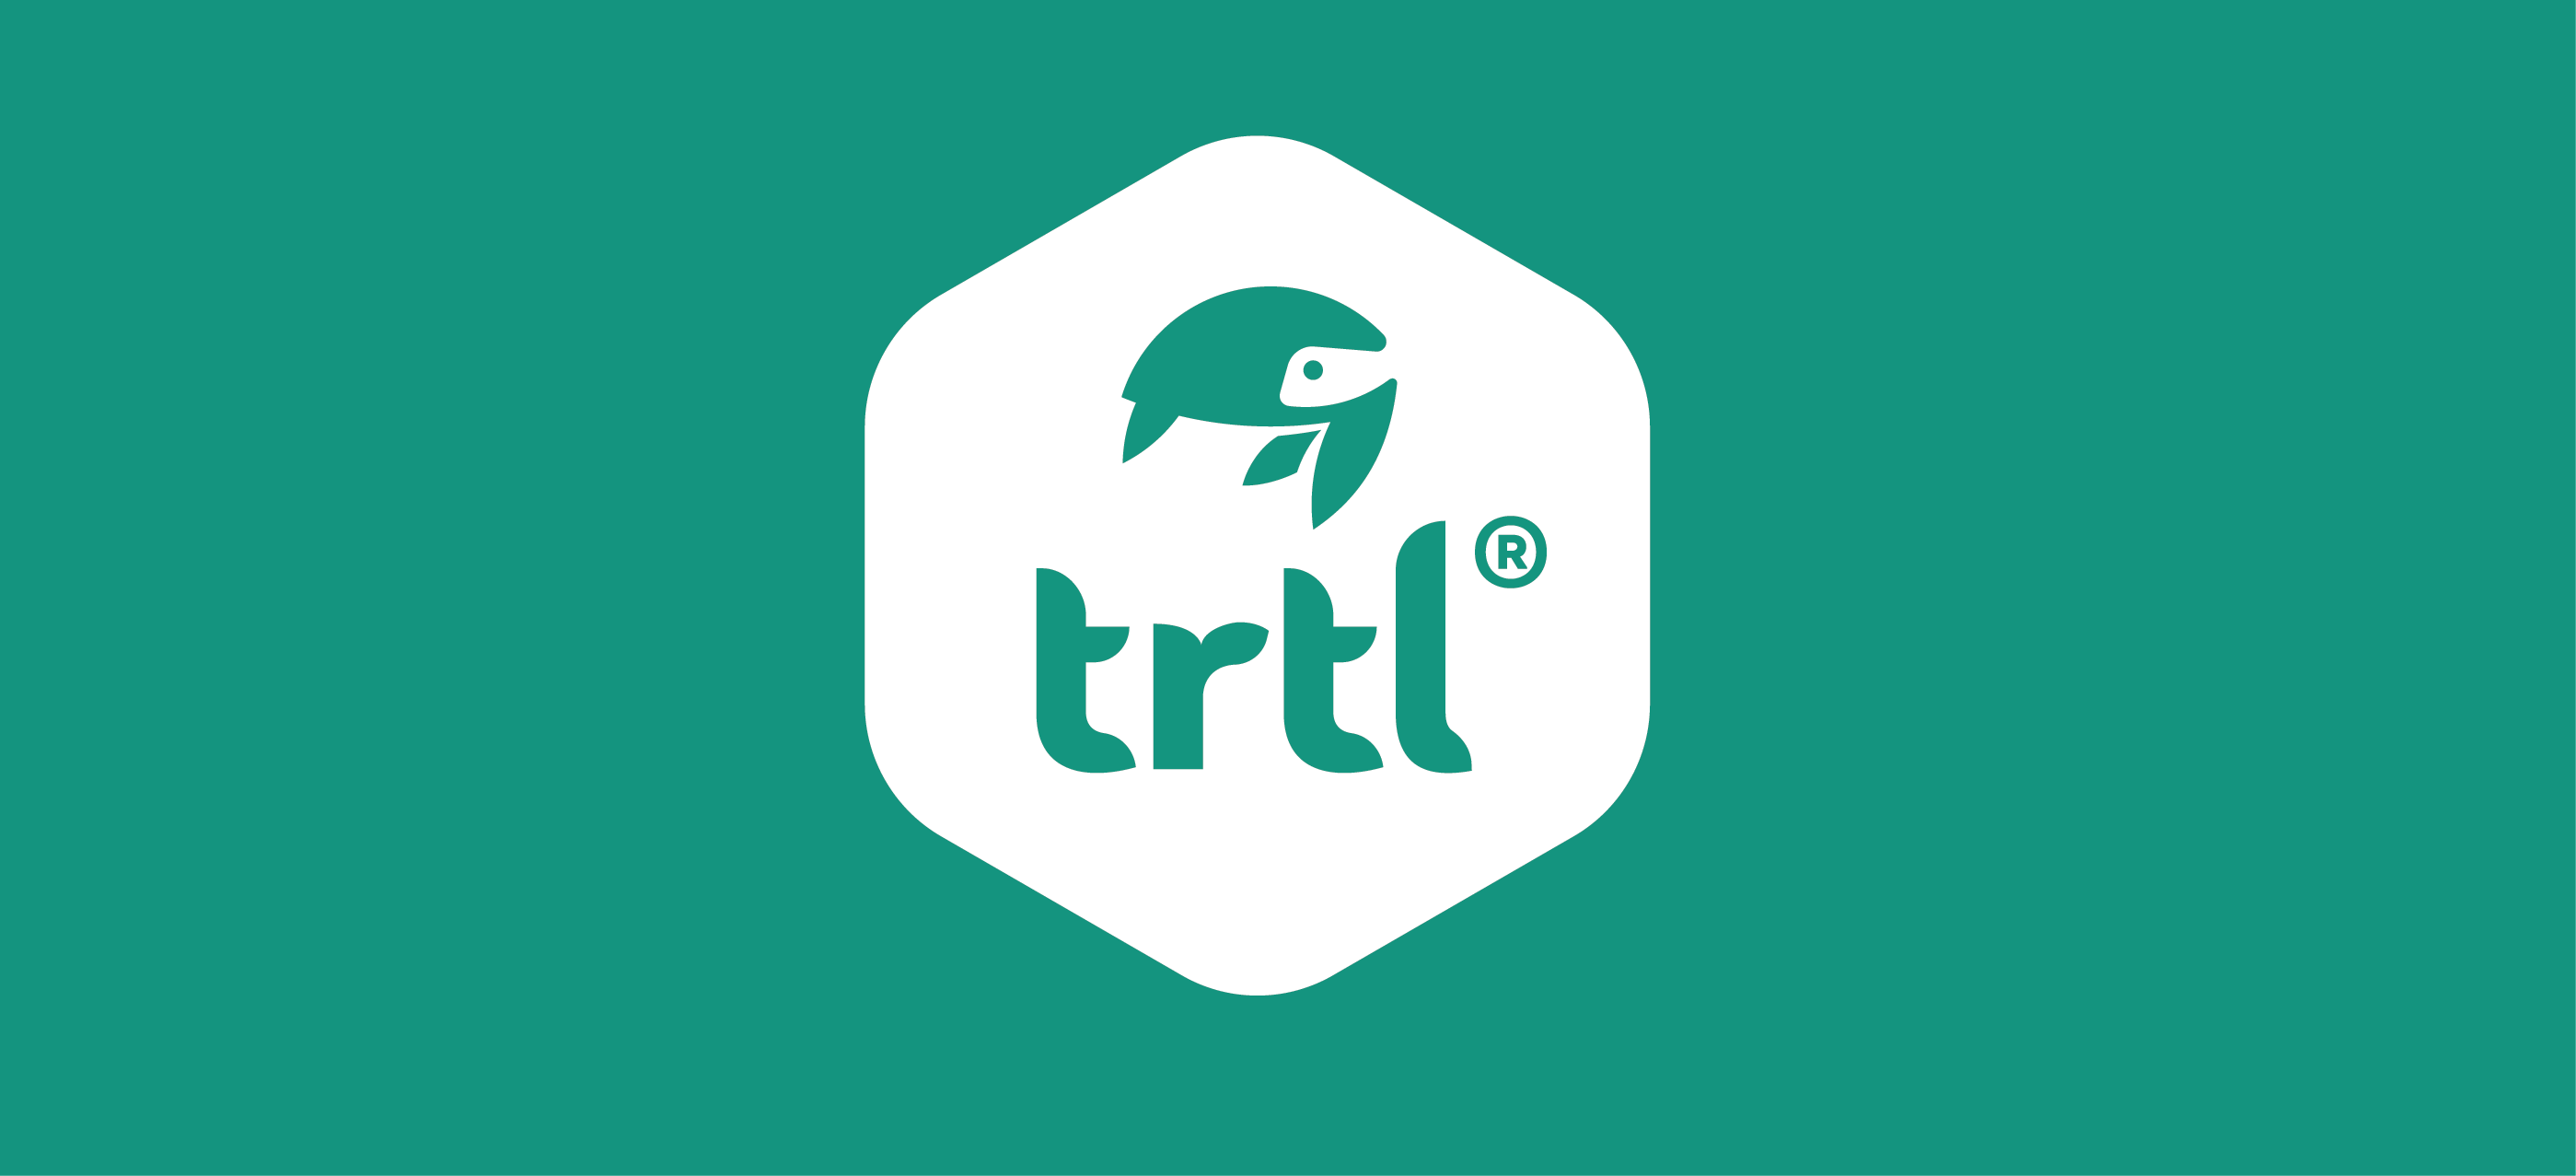 White_trtl_logo_green_turtle.png